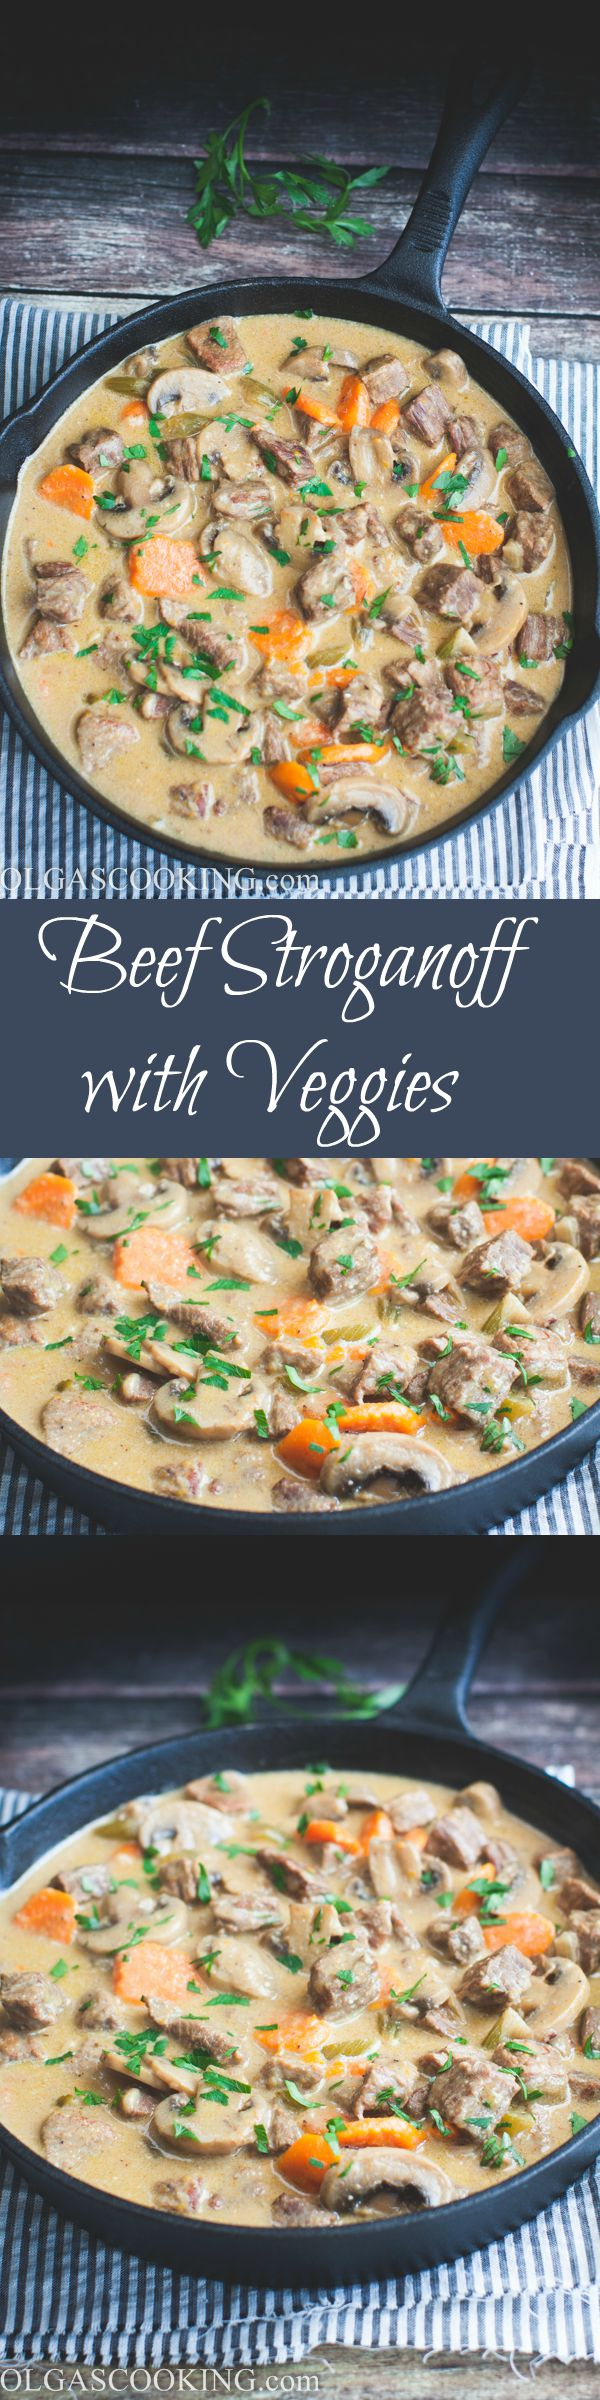 Oh this beef stroganoff with veggies is to die for! These soft beef chunks in creamy sauce accompanied by mushrooms, celery, and carrots and divine and delicious. I love how versatile this recipe is and can be used to top pretty much everything from mashed potatoes to plain rice to pasta. You'll be going for seconds in no time!